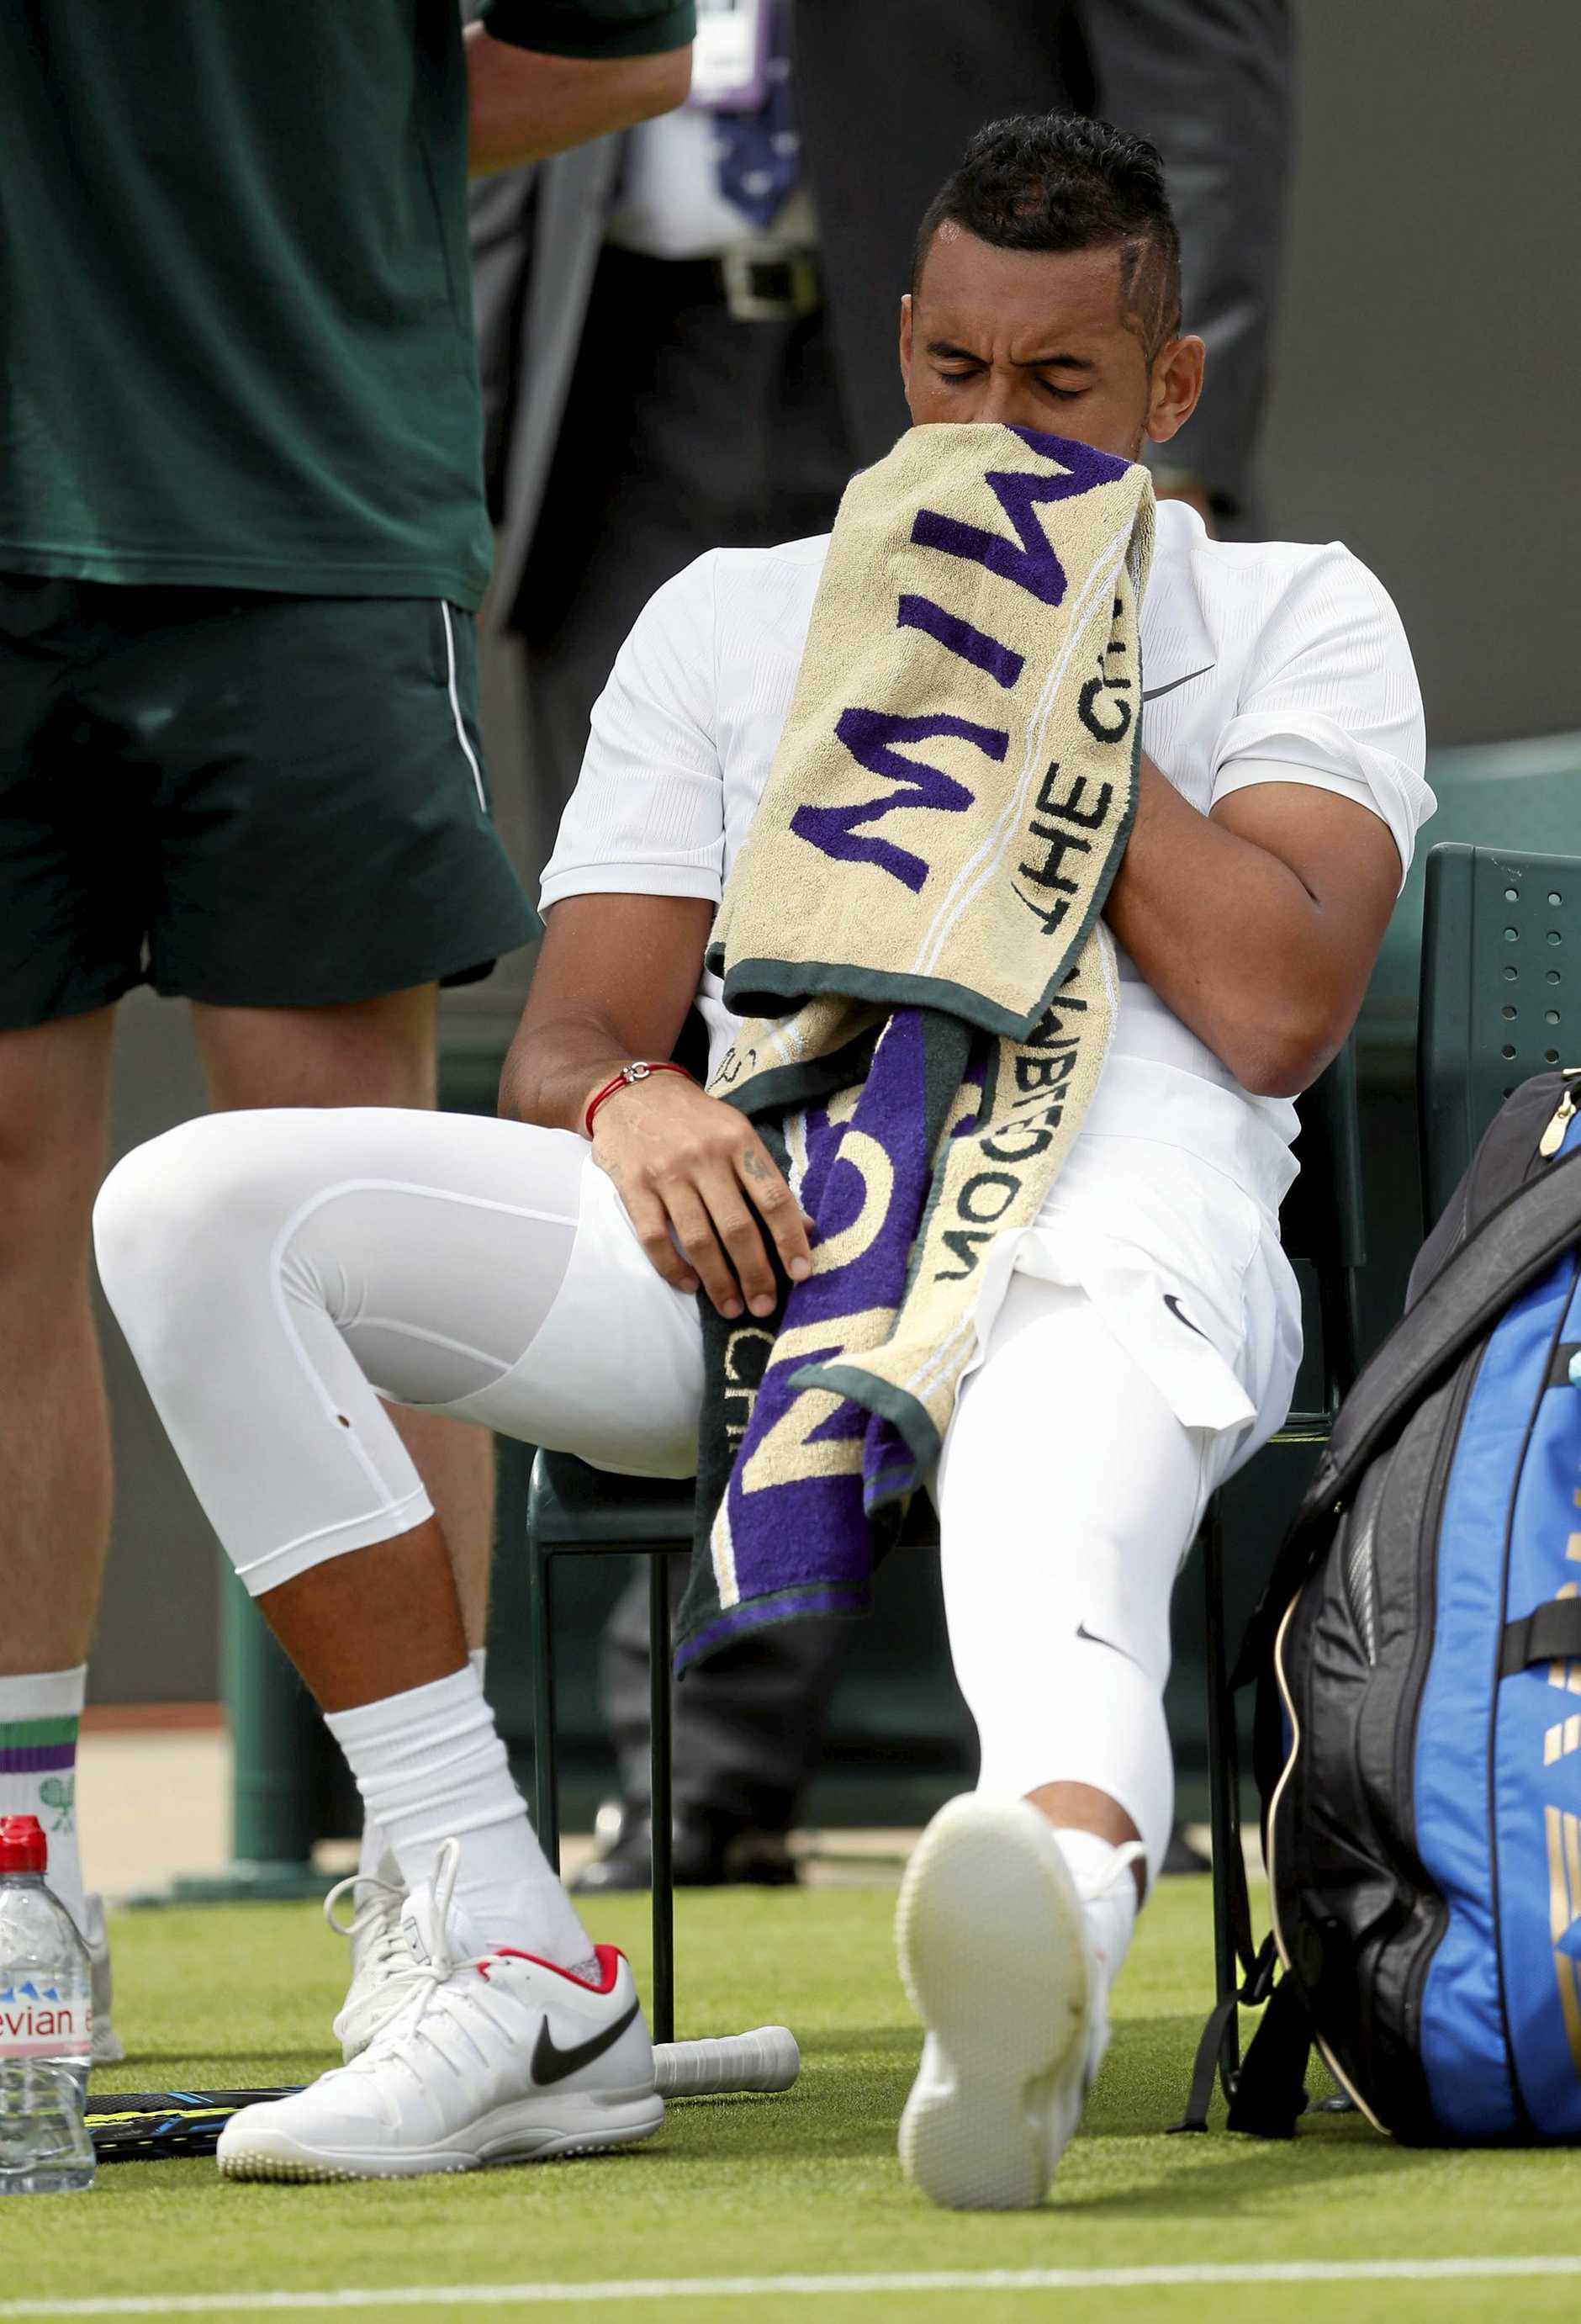 Australia's Nick Kyrgios wipes his face during change of ends in his Men's Singles Match against Pierre-Hugues Herbert of France, on the opening day at the Wimbledon Tennis Championships in London Monday, July 3, 2017. (AP Photo/Kirsty Wigglesworth)